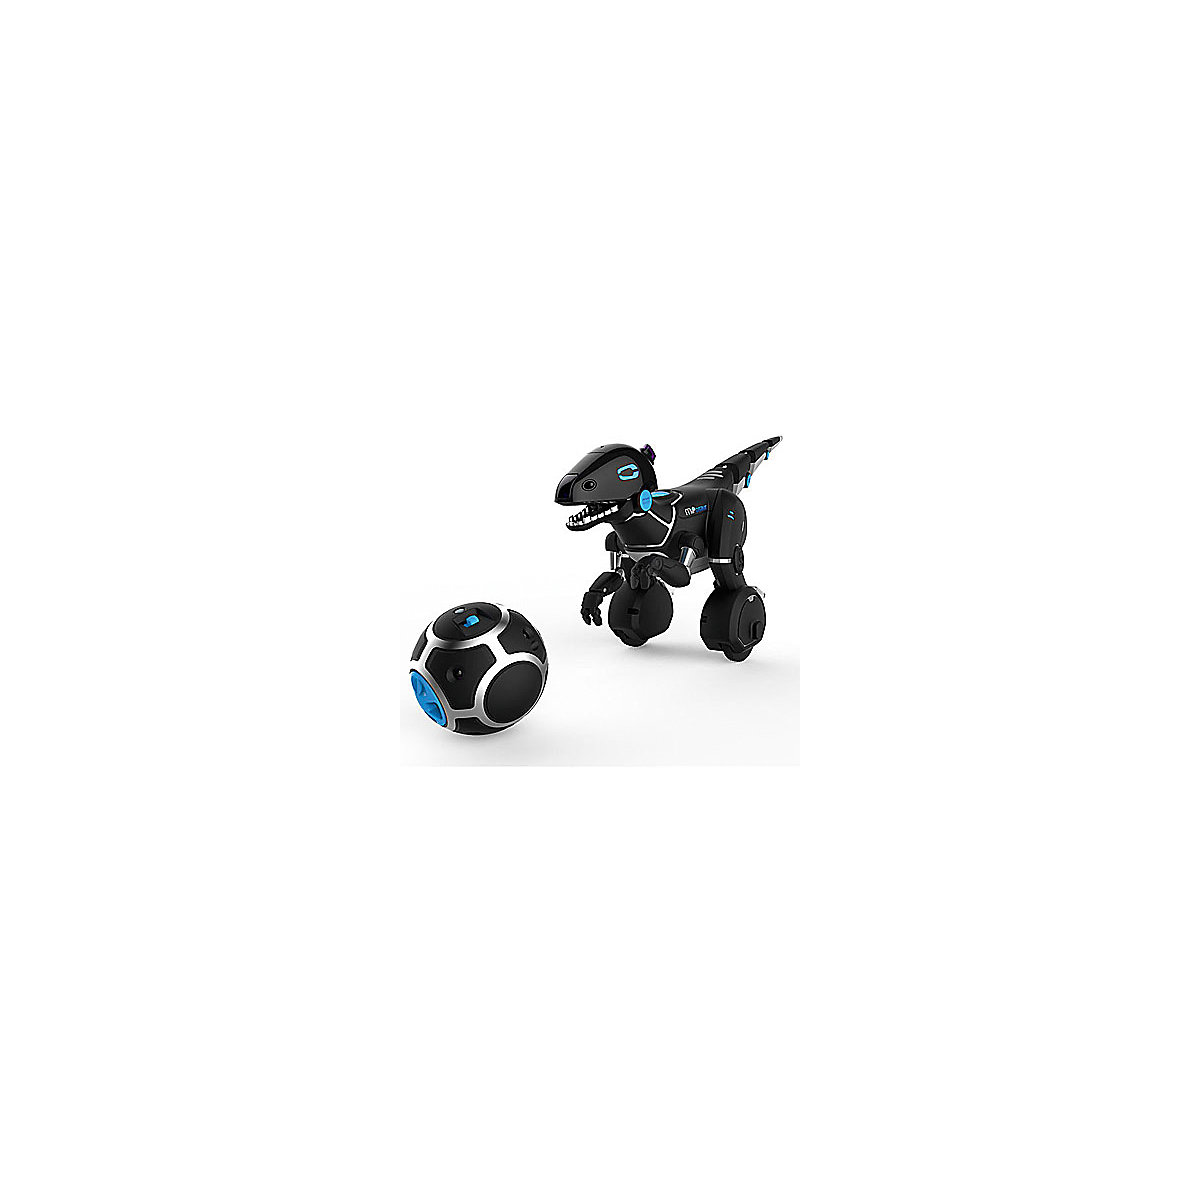 Electronic Pets WowWee 4122551 Tamagochi Robot Toys Interactive Dog Animals Kids decepticons robot lockdown robot famous brand car classic toys for children action figures birthday gift